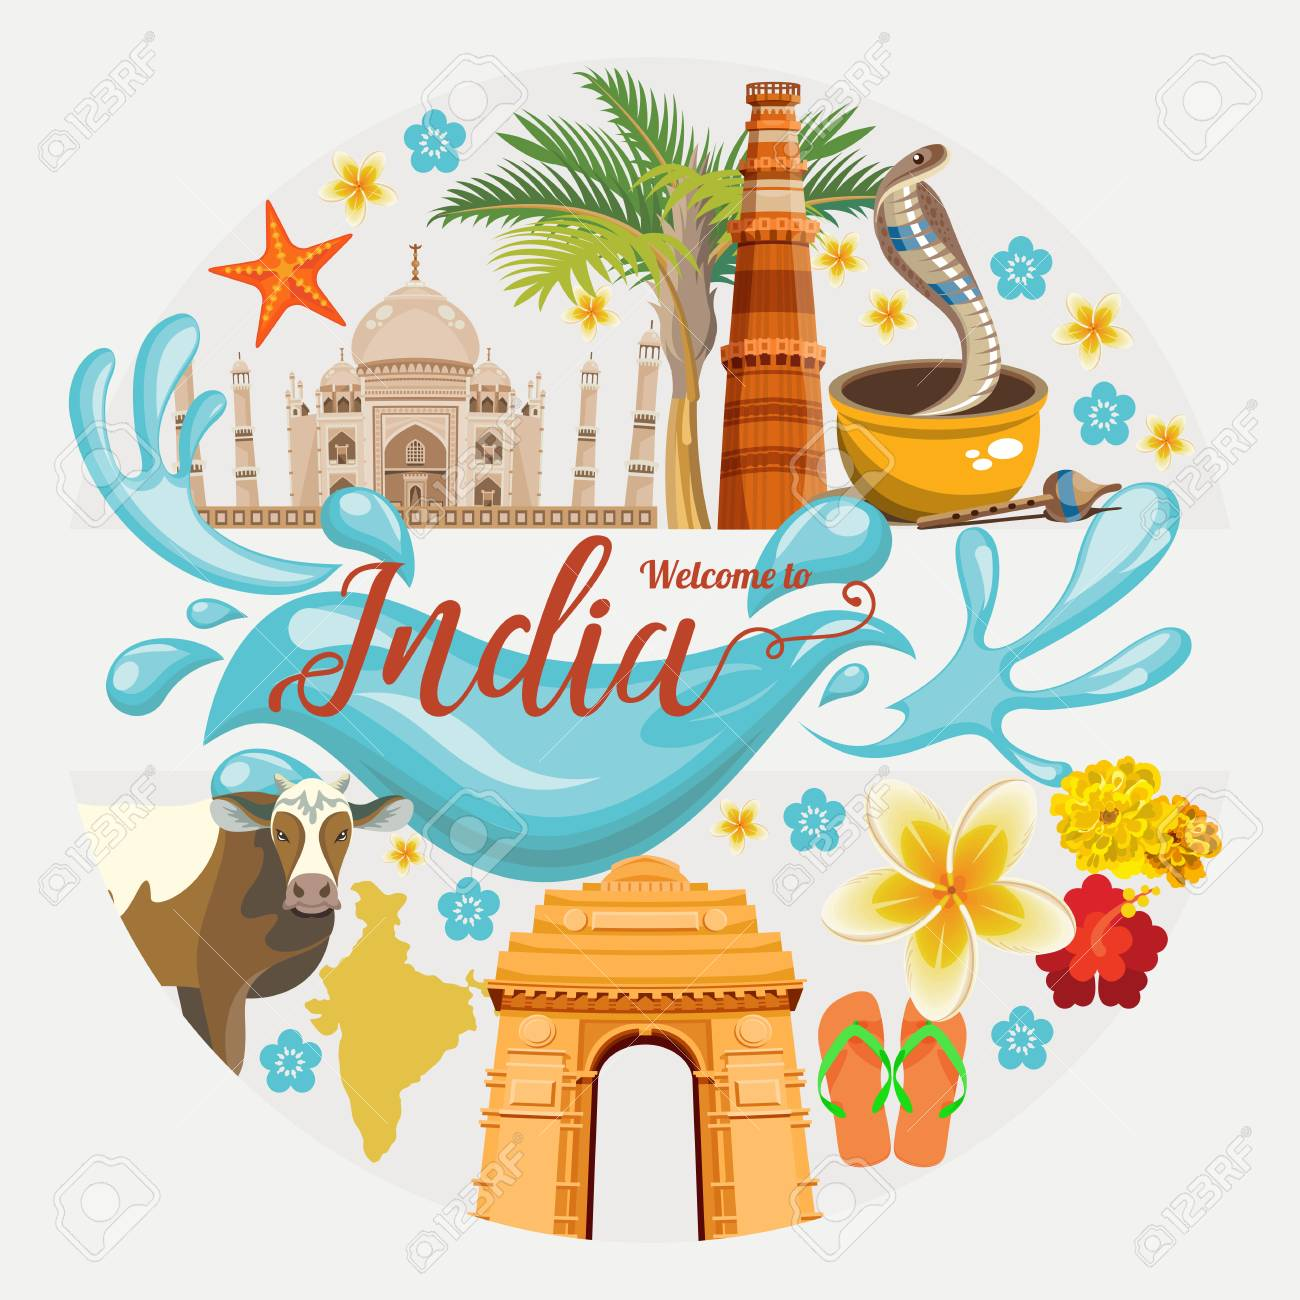 India Tourism Stock Vector Illustration And Royalty Free India Tourism  Clipart